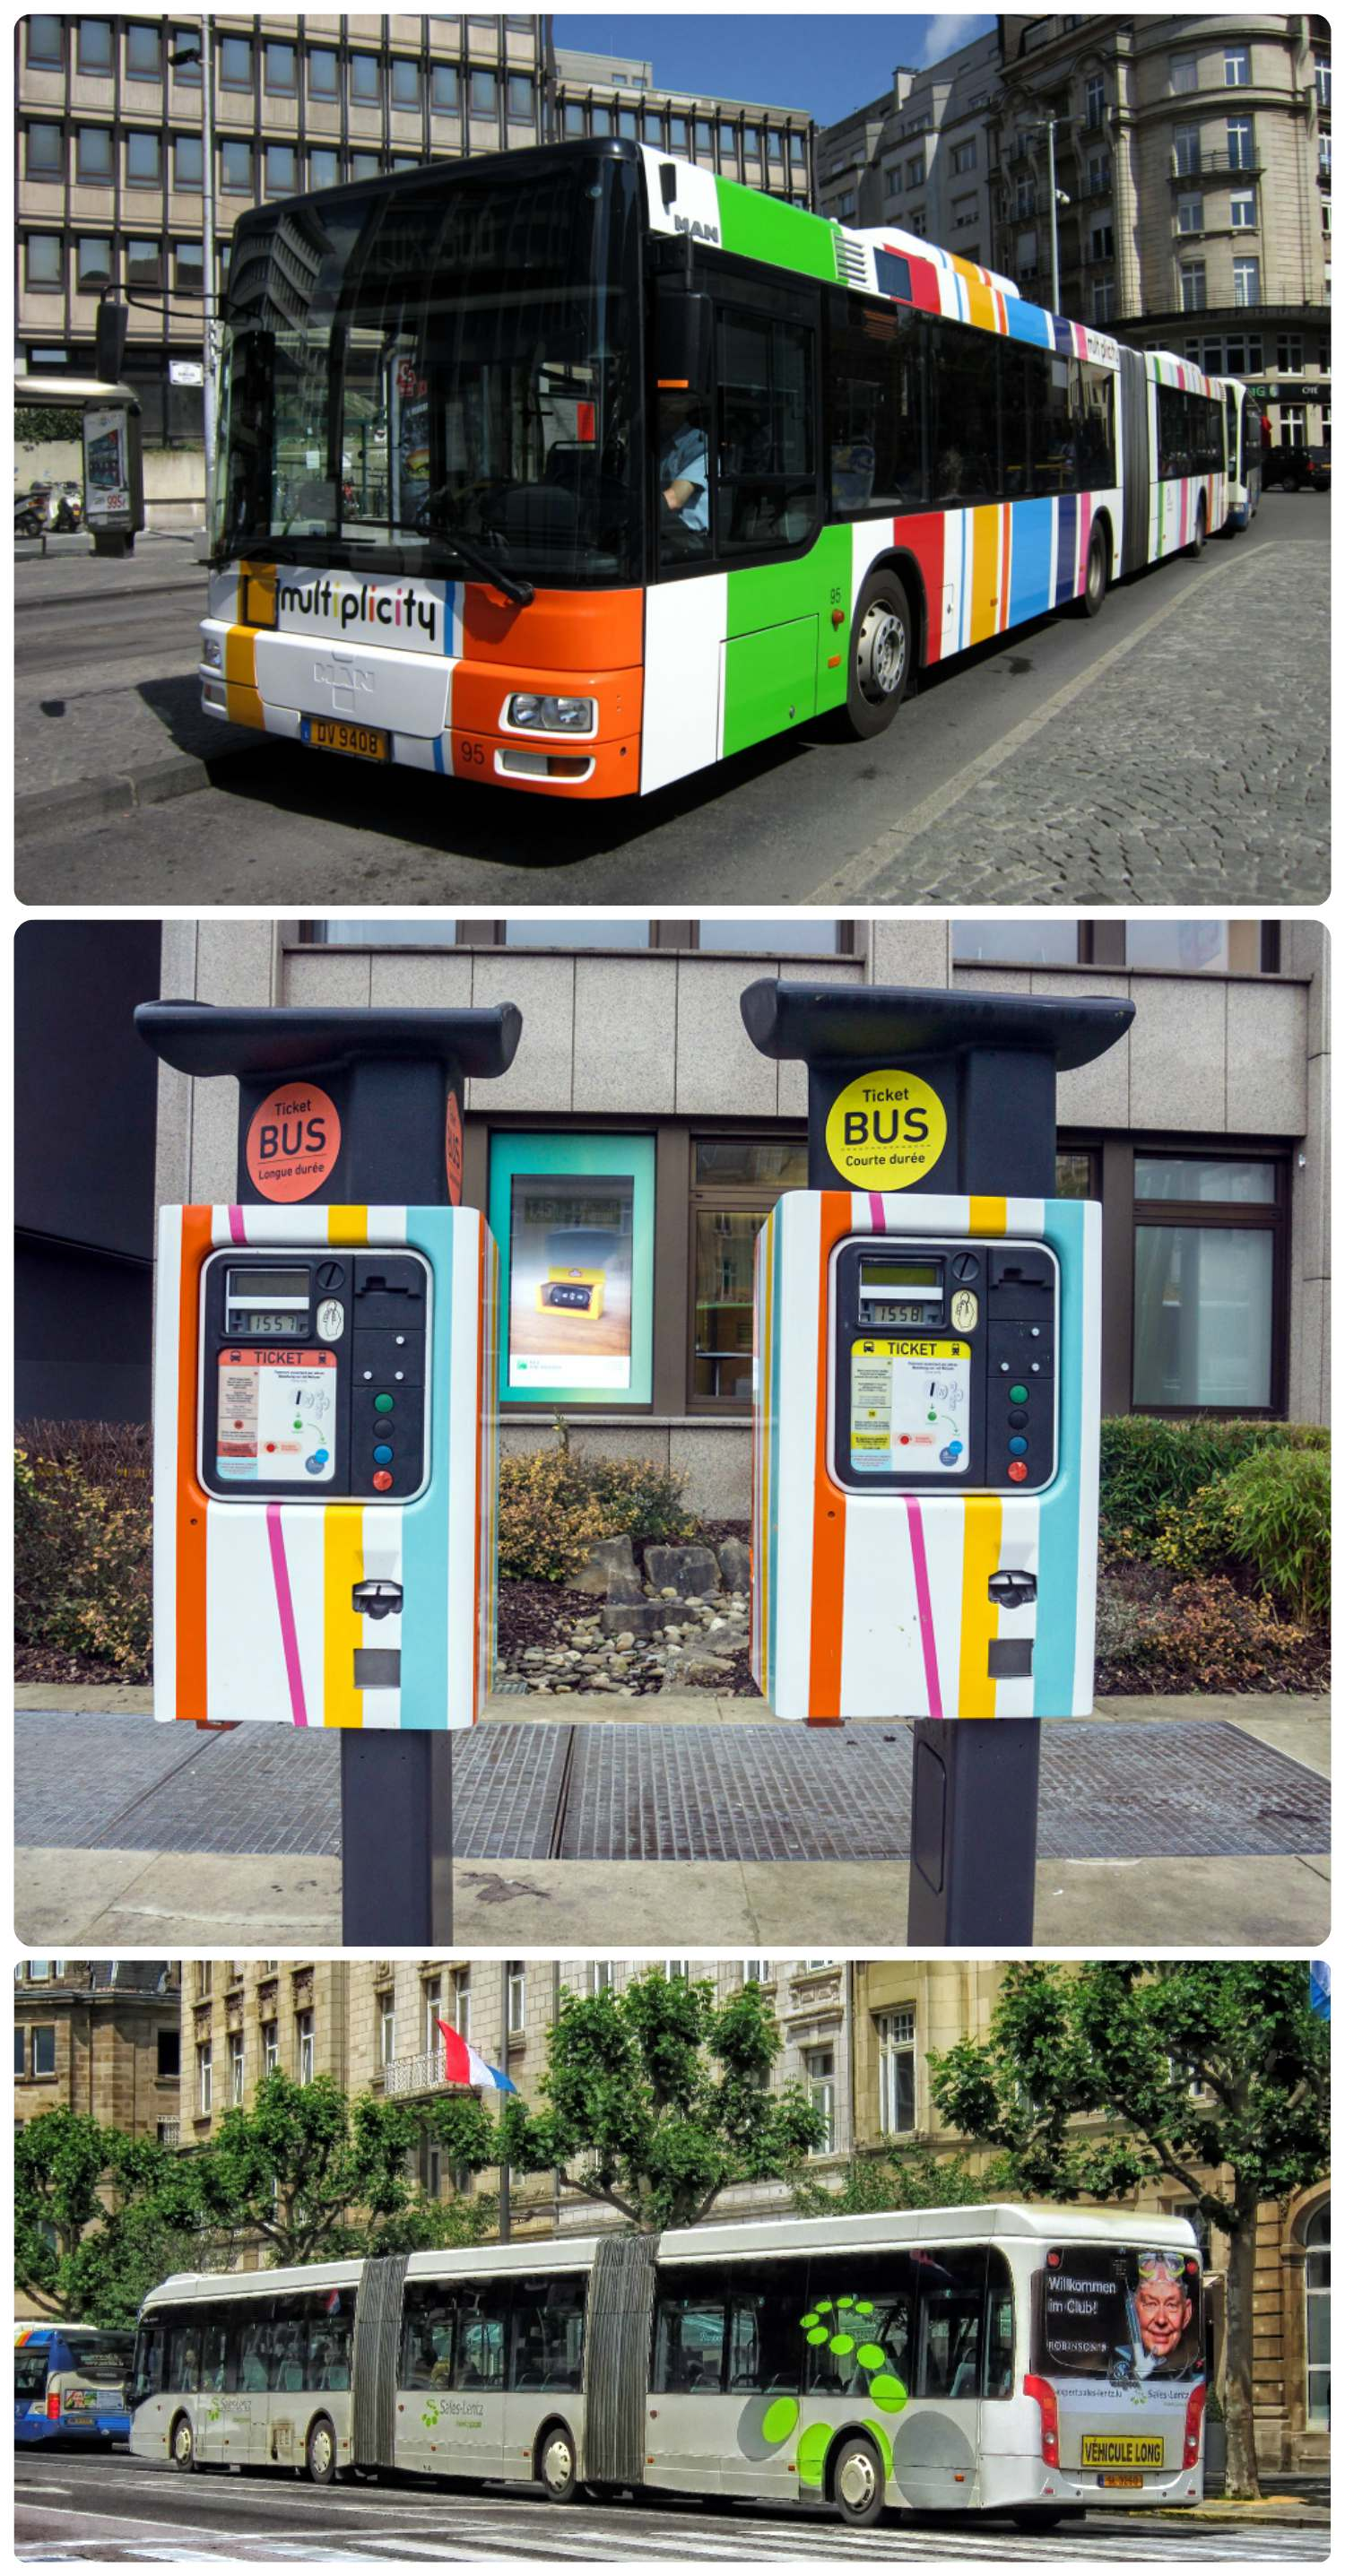 Top to bottom: Luxembourg buses are commonly wrapped in advertisements, ticket machine for bus tickets, a triple segment bus in Luxembourg.